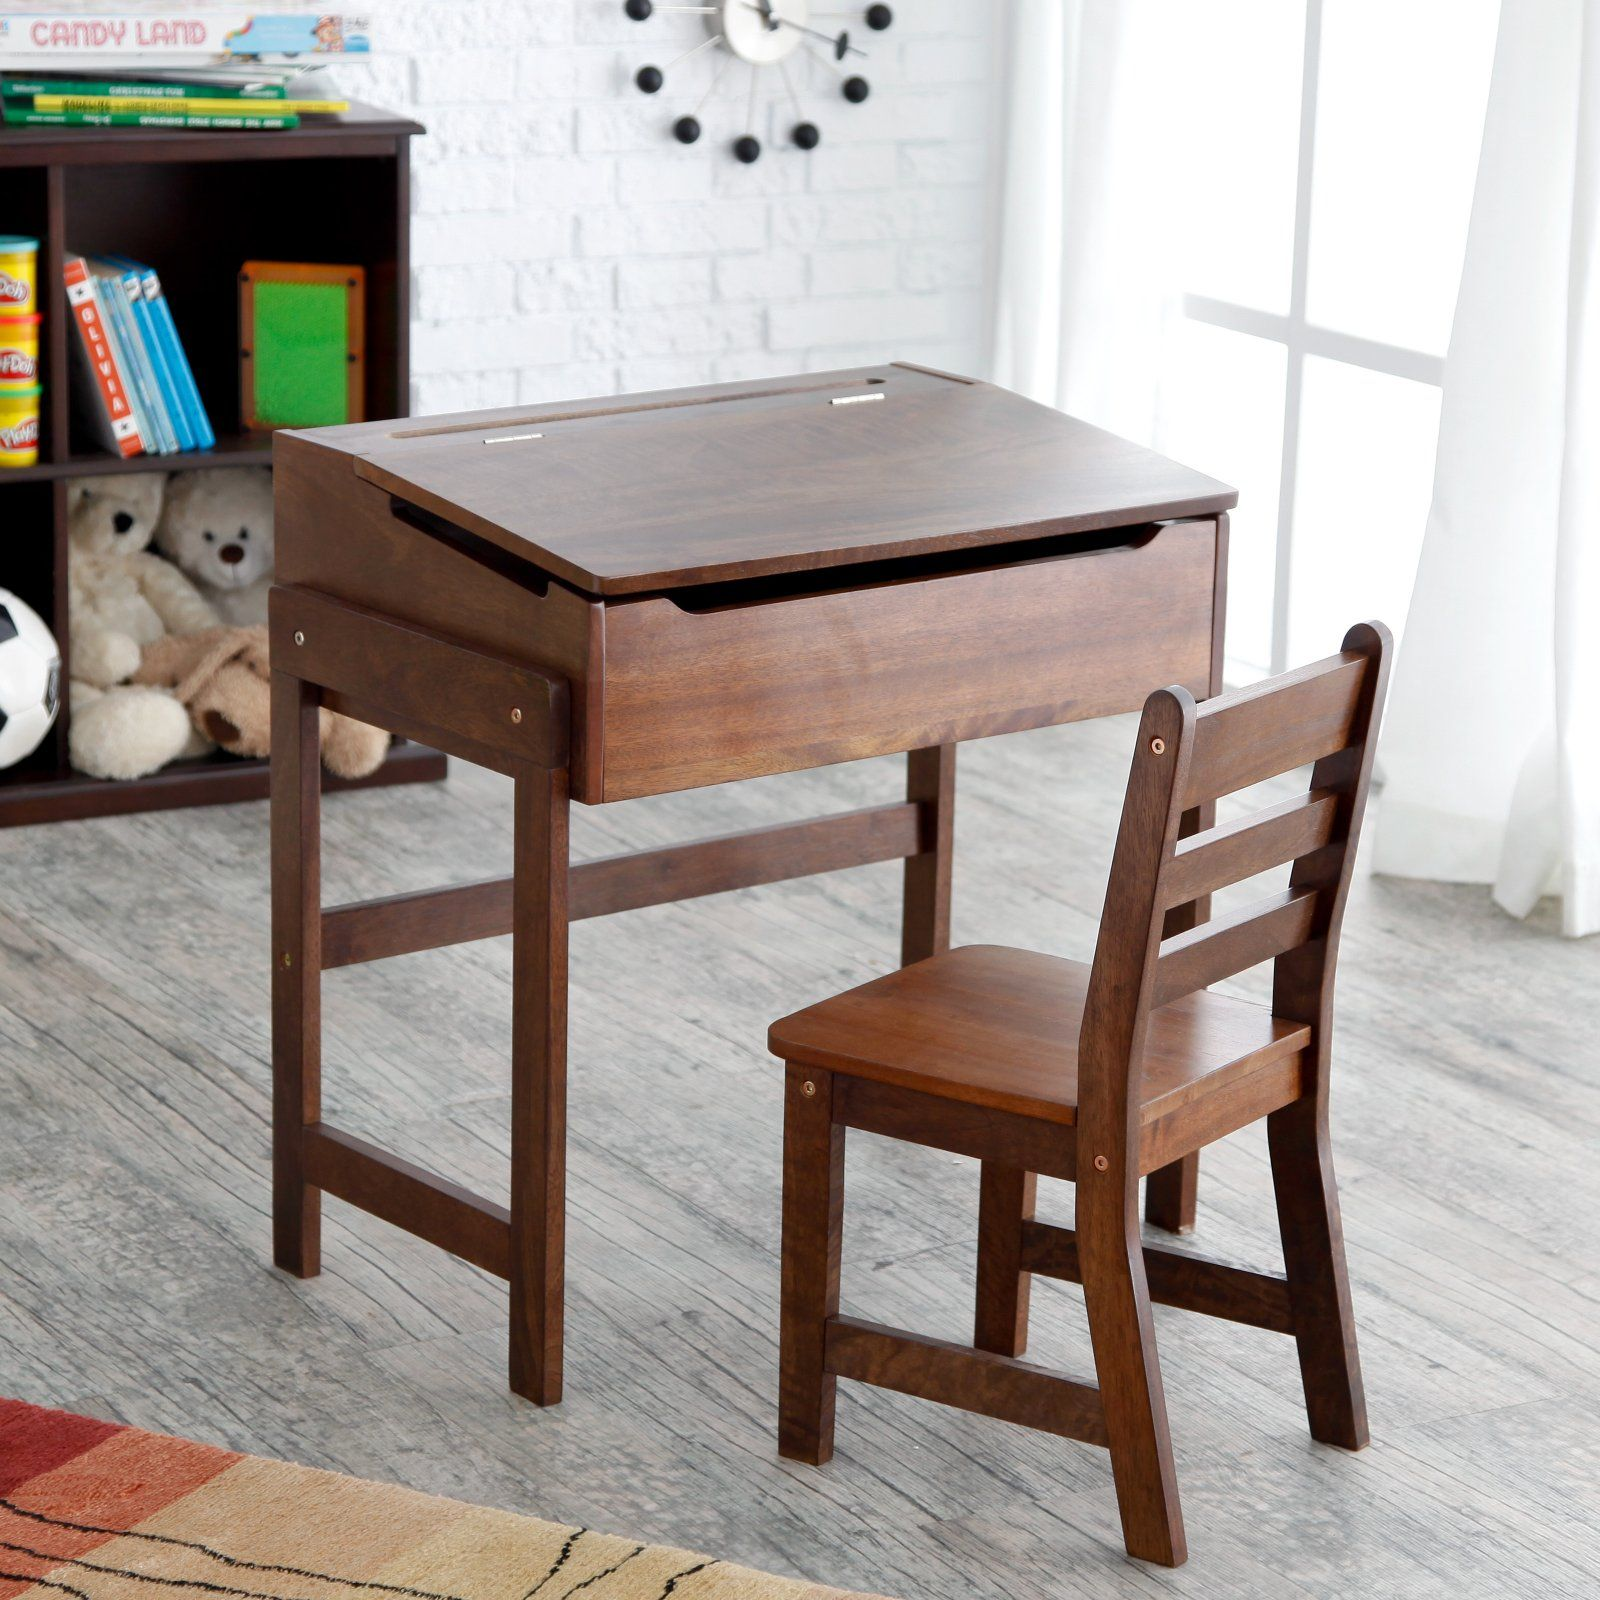 Schoolhouse Desk And Chair Set Walnut Kids Furniture